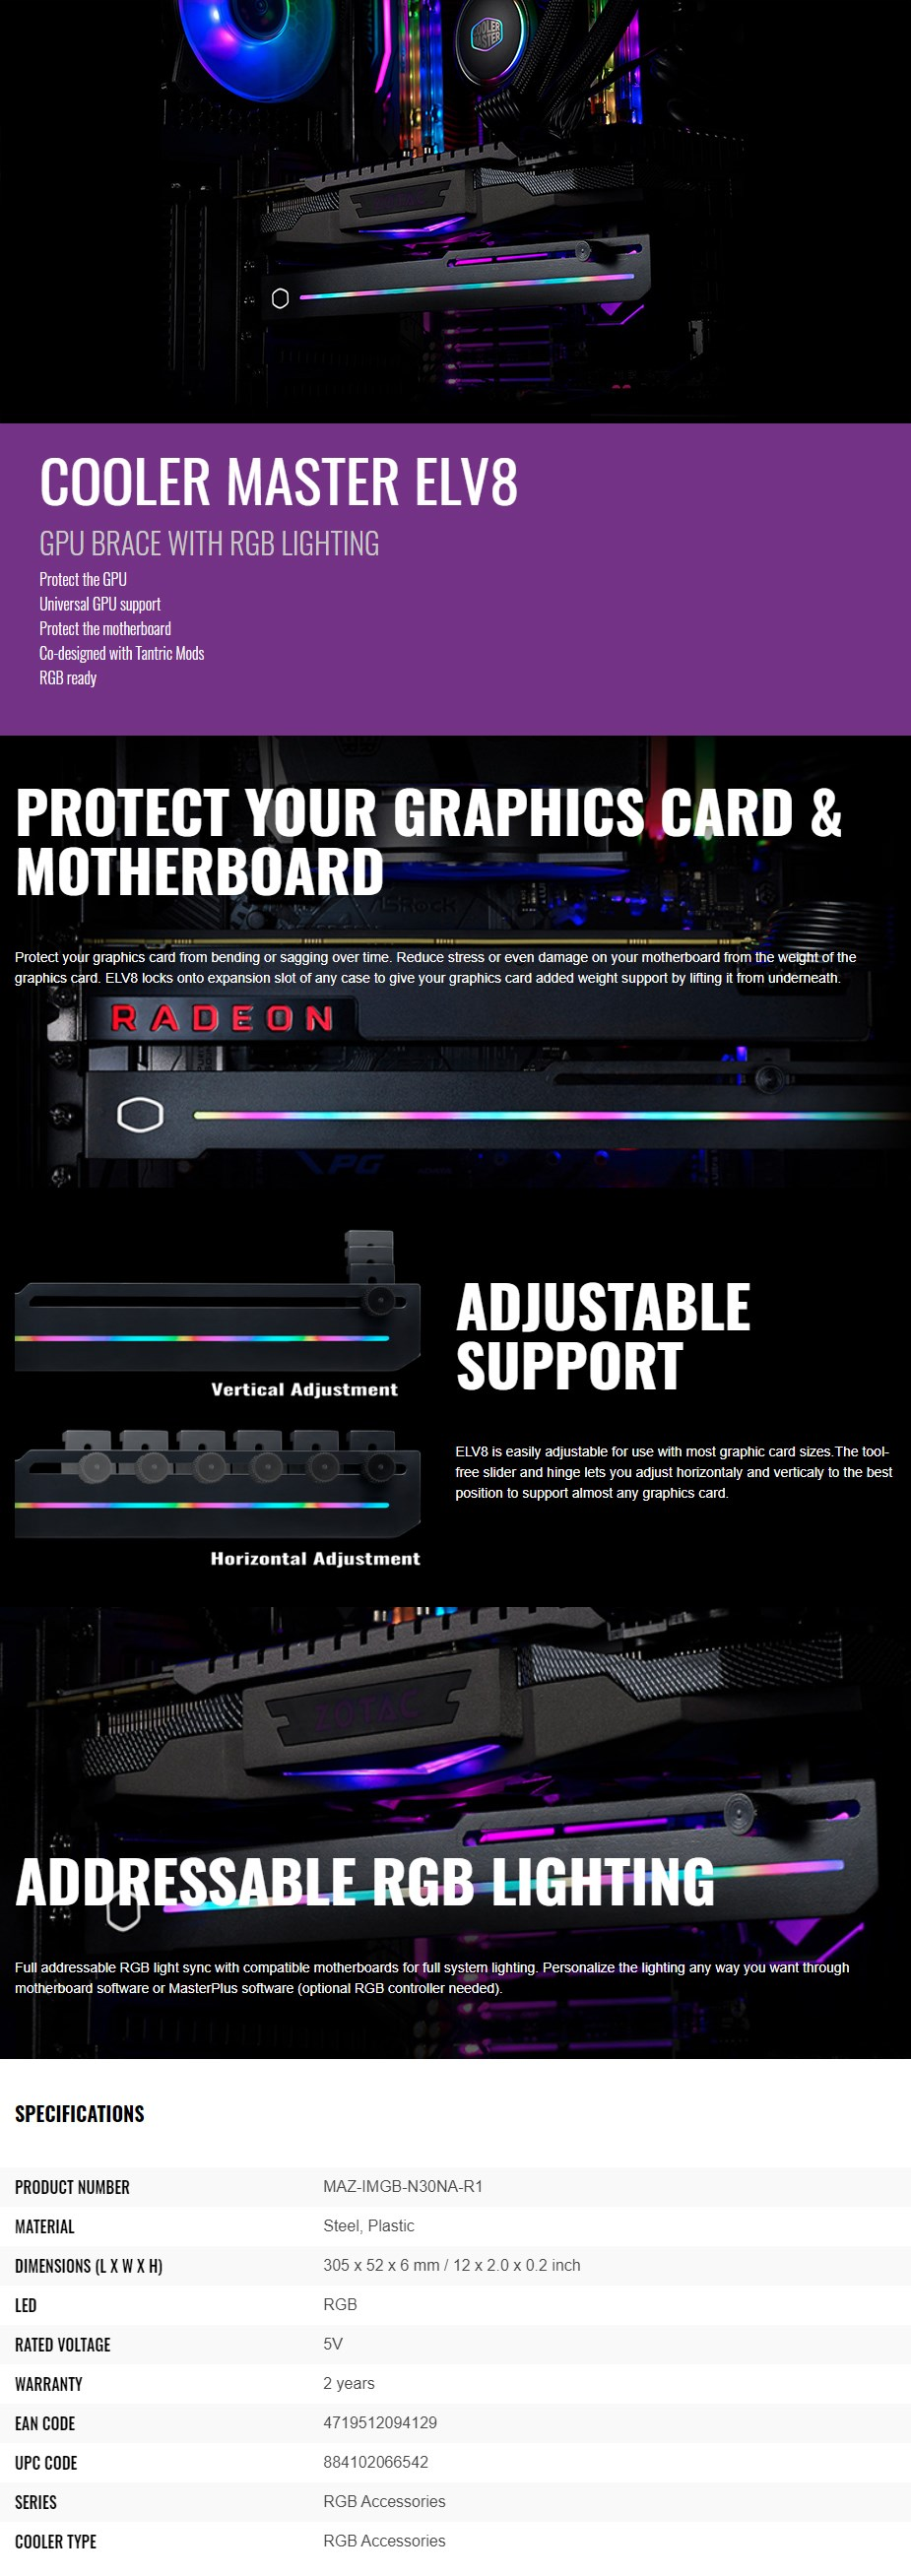 Cooler Master ELV8 GPU Brace with RGB Lighting - Overview 1